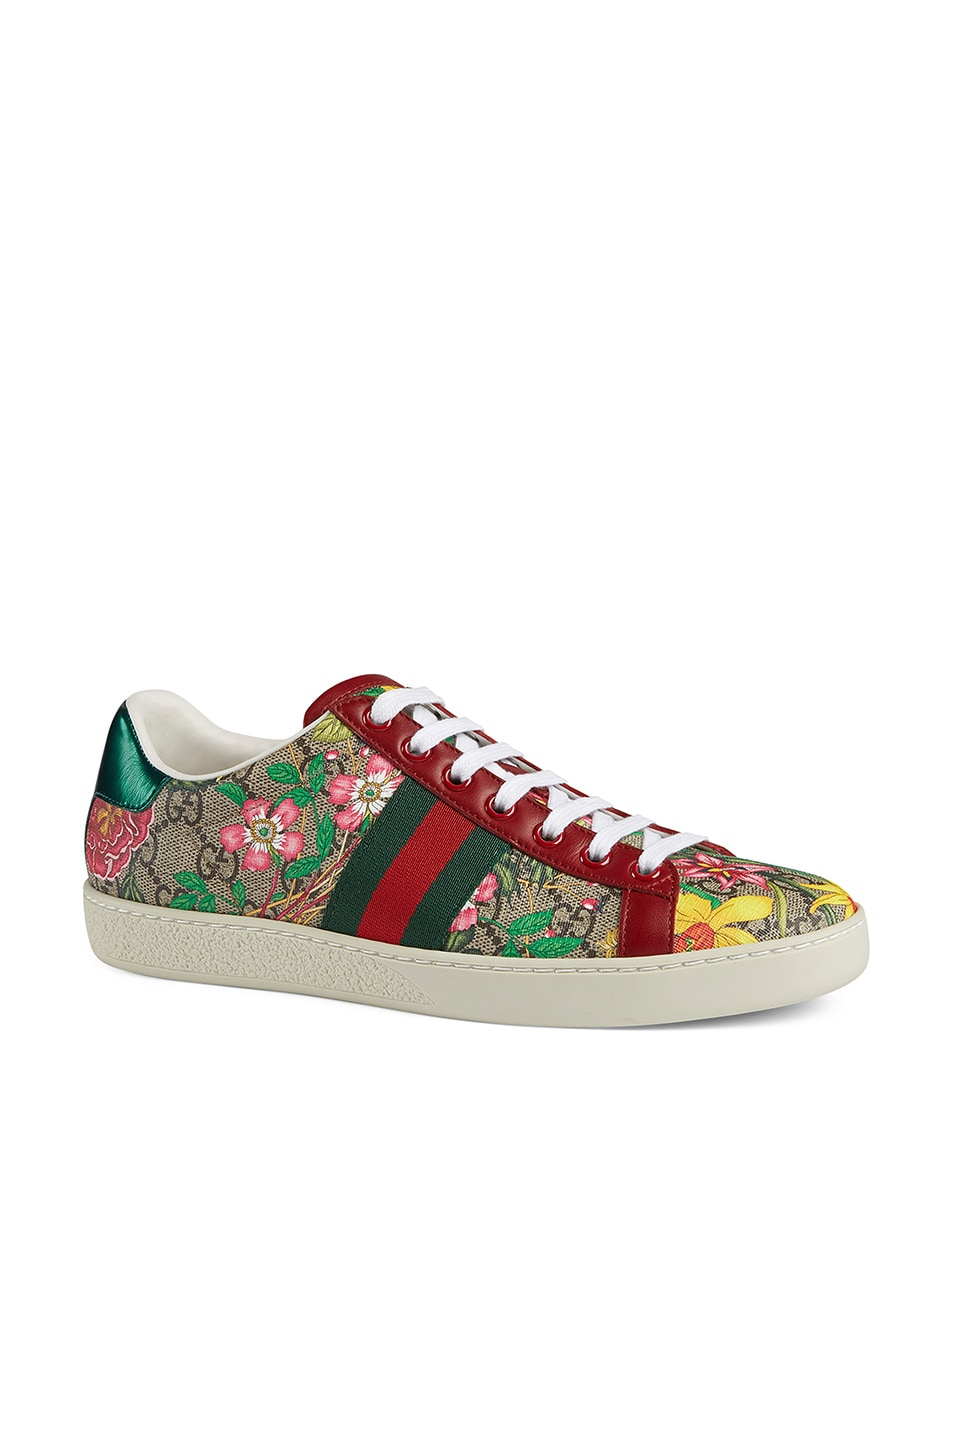 Image 2 of Gucci New Ace GG Floral Sneakers in Beige Ebony